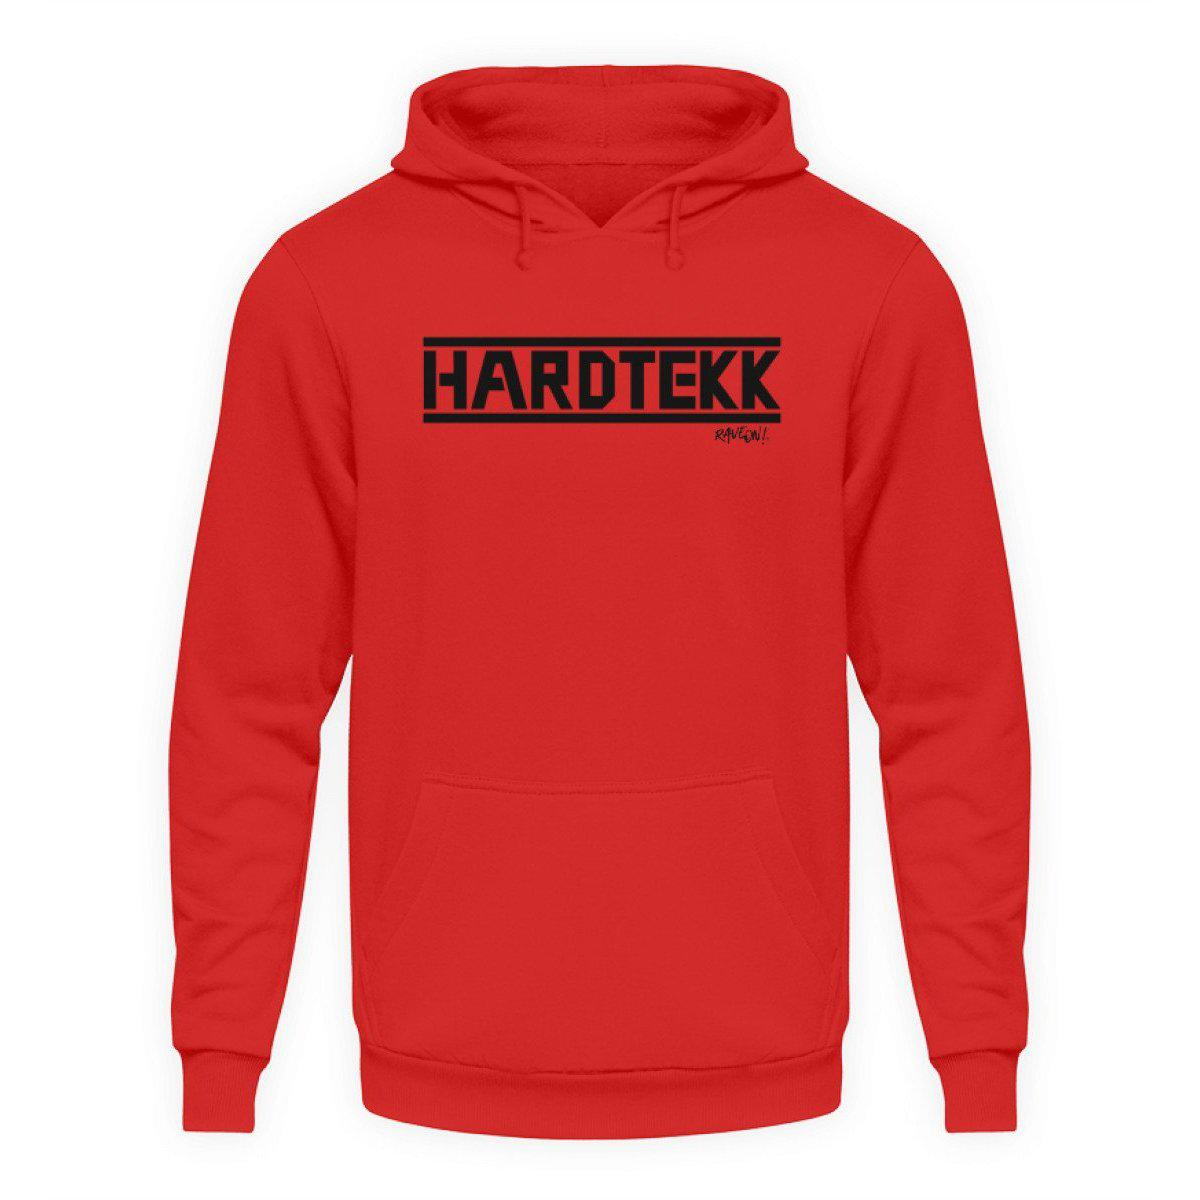 HARDTEKK white - Rave On!® - Unisex Kapuzenpullover Hoodie Unisex Hoodie Fire Red / L - Rave On!® der Club & Techno Szene Shop für Coole Junge Mode Streetwear Style & Fashion Outfits + Sexy Festival 420 Stuff